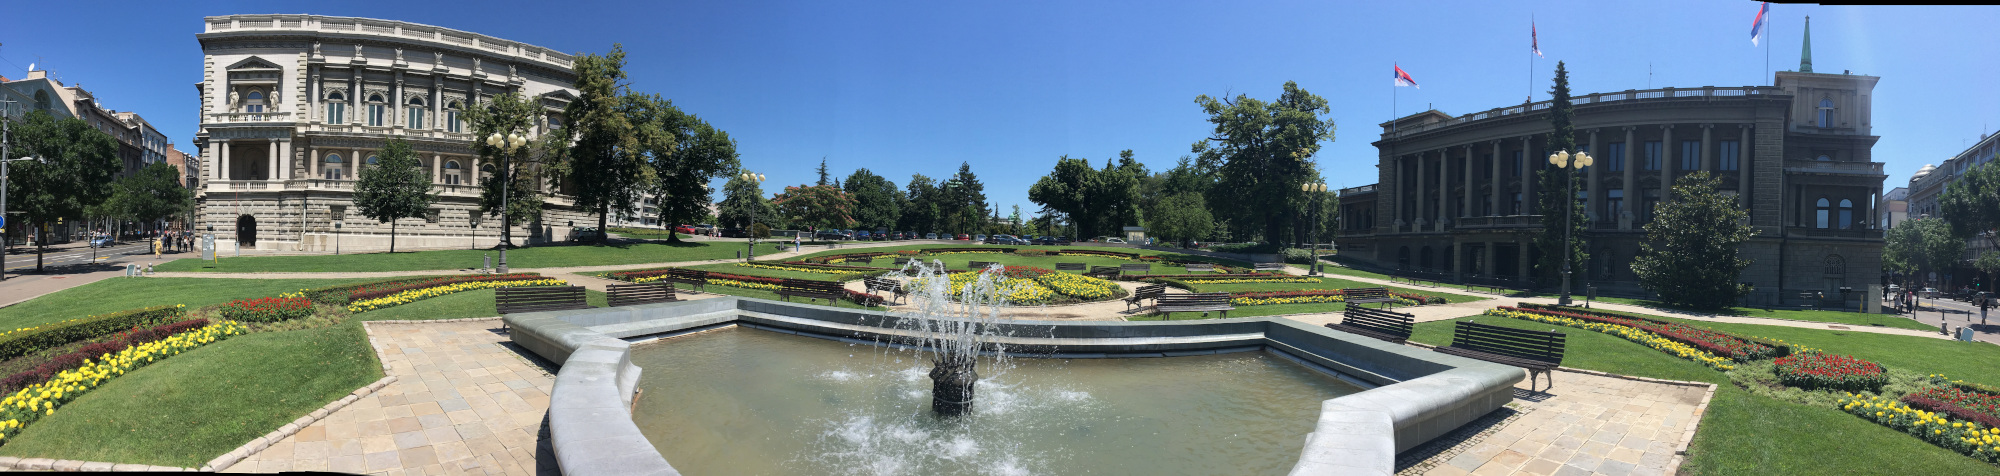 Panoramic view of Royal Garden